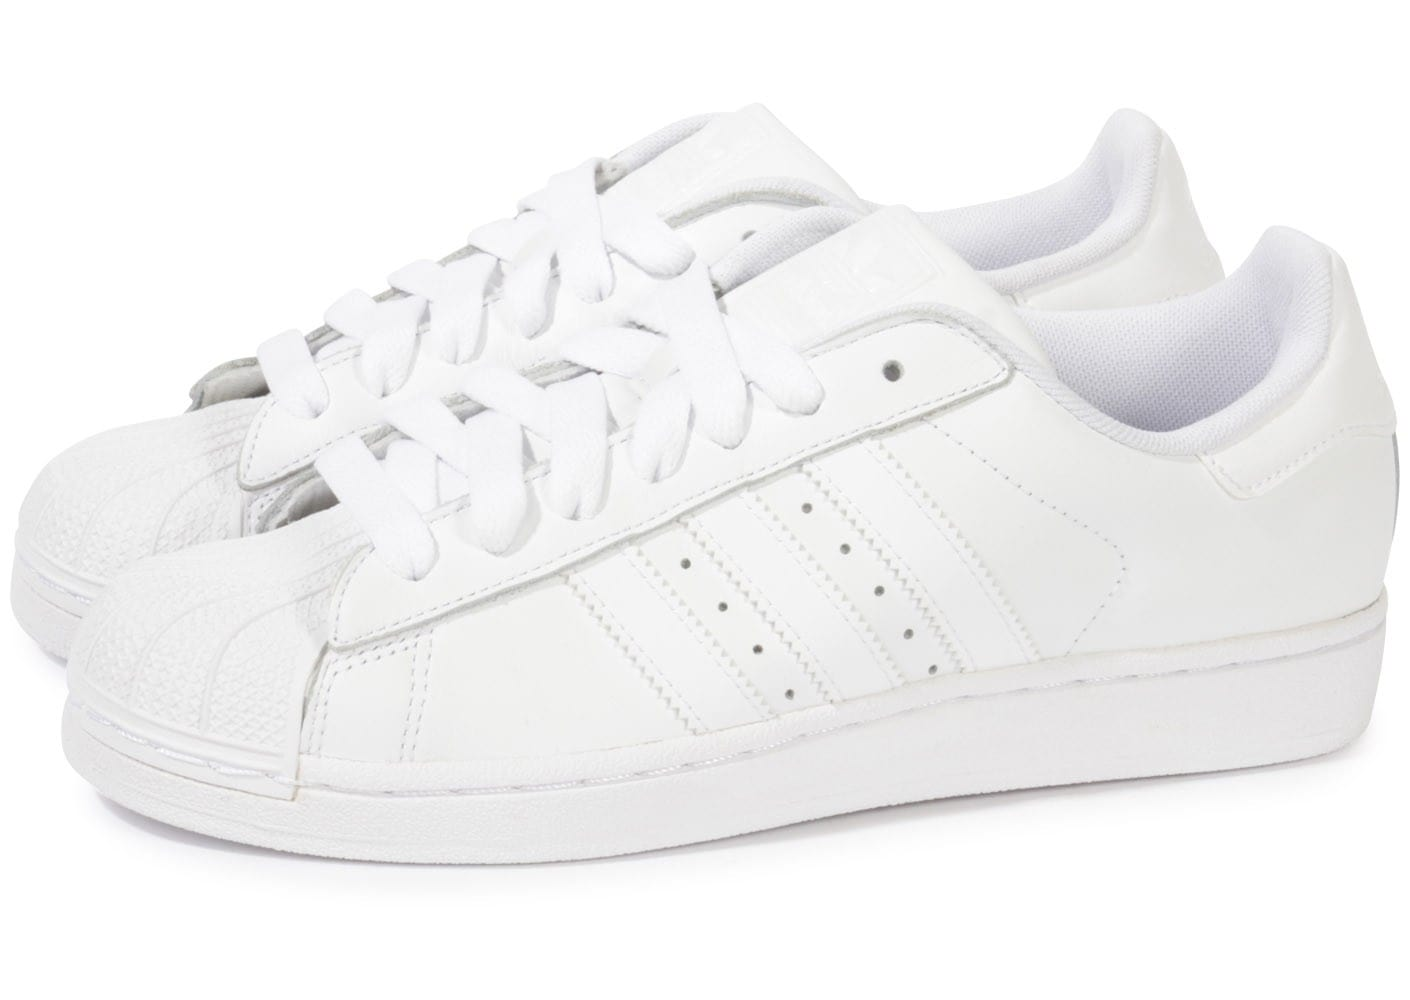 adidas Superstar 2 Blanche - Chaussures Baskets